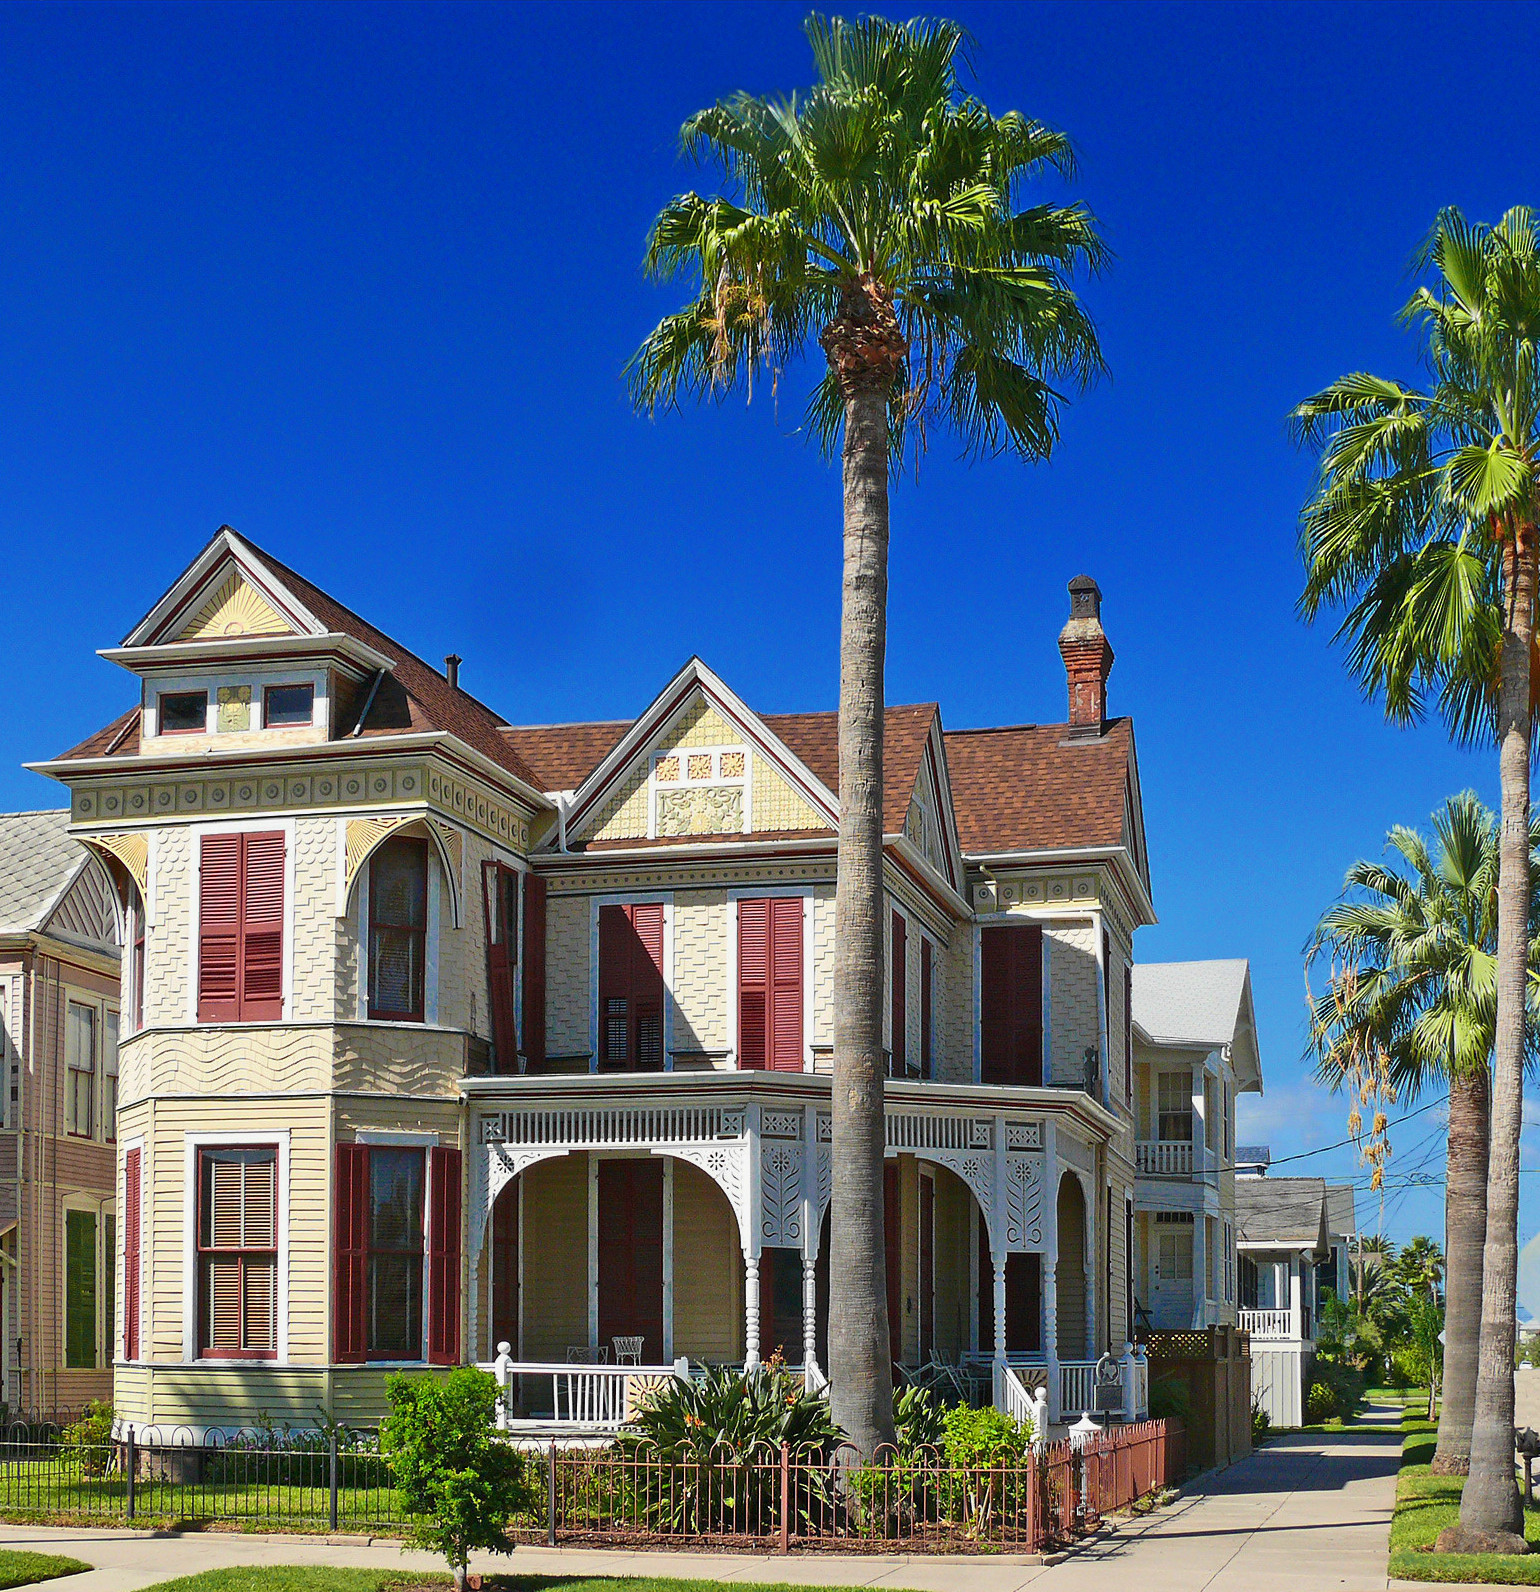 Fredrick William Beissner House, Galveston, Texas. Credit i_am_jim